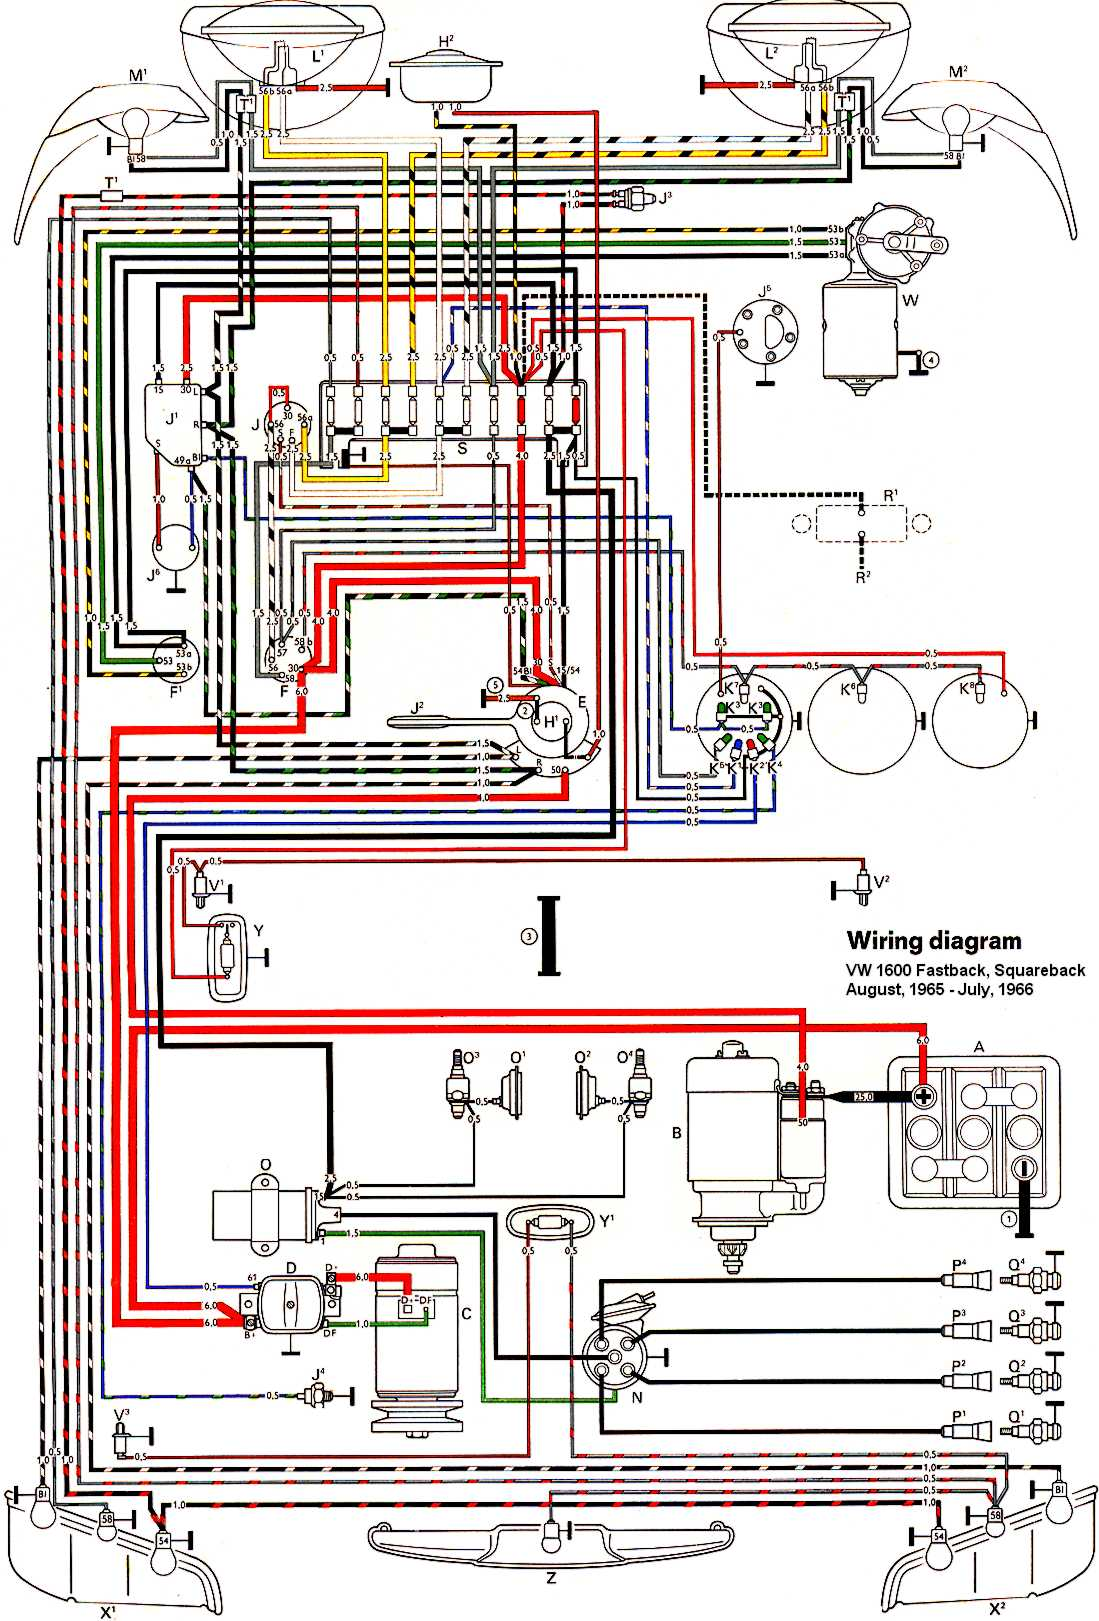 type3_1600_66 vw bus wiring diagram 1965 vw bus wiring diagram \u2022 wiring diagrams 1970 vw bug wiring diagram at arjmand.co